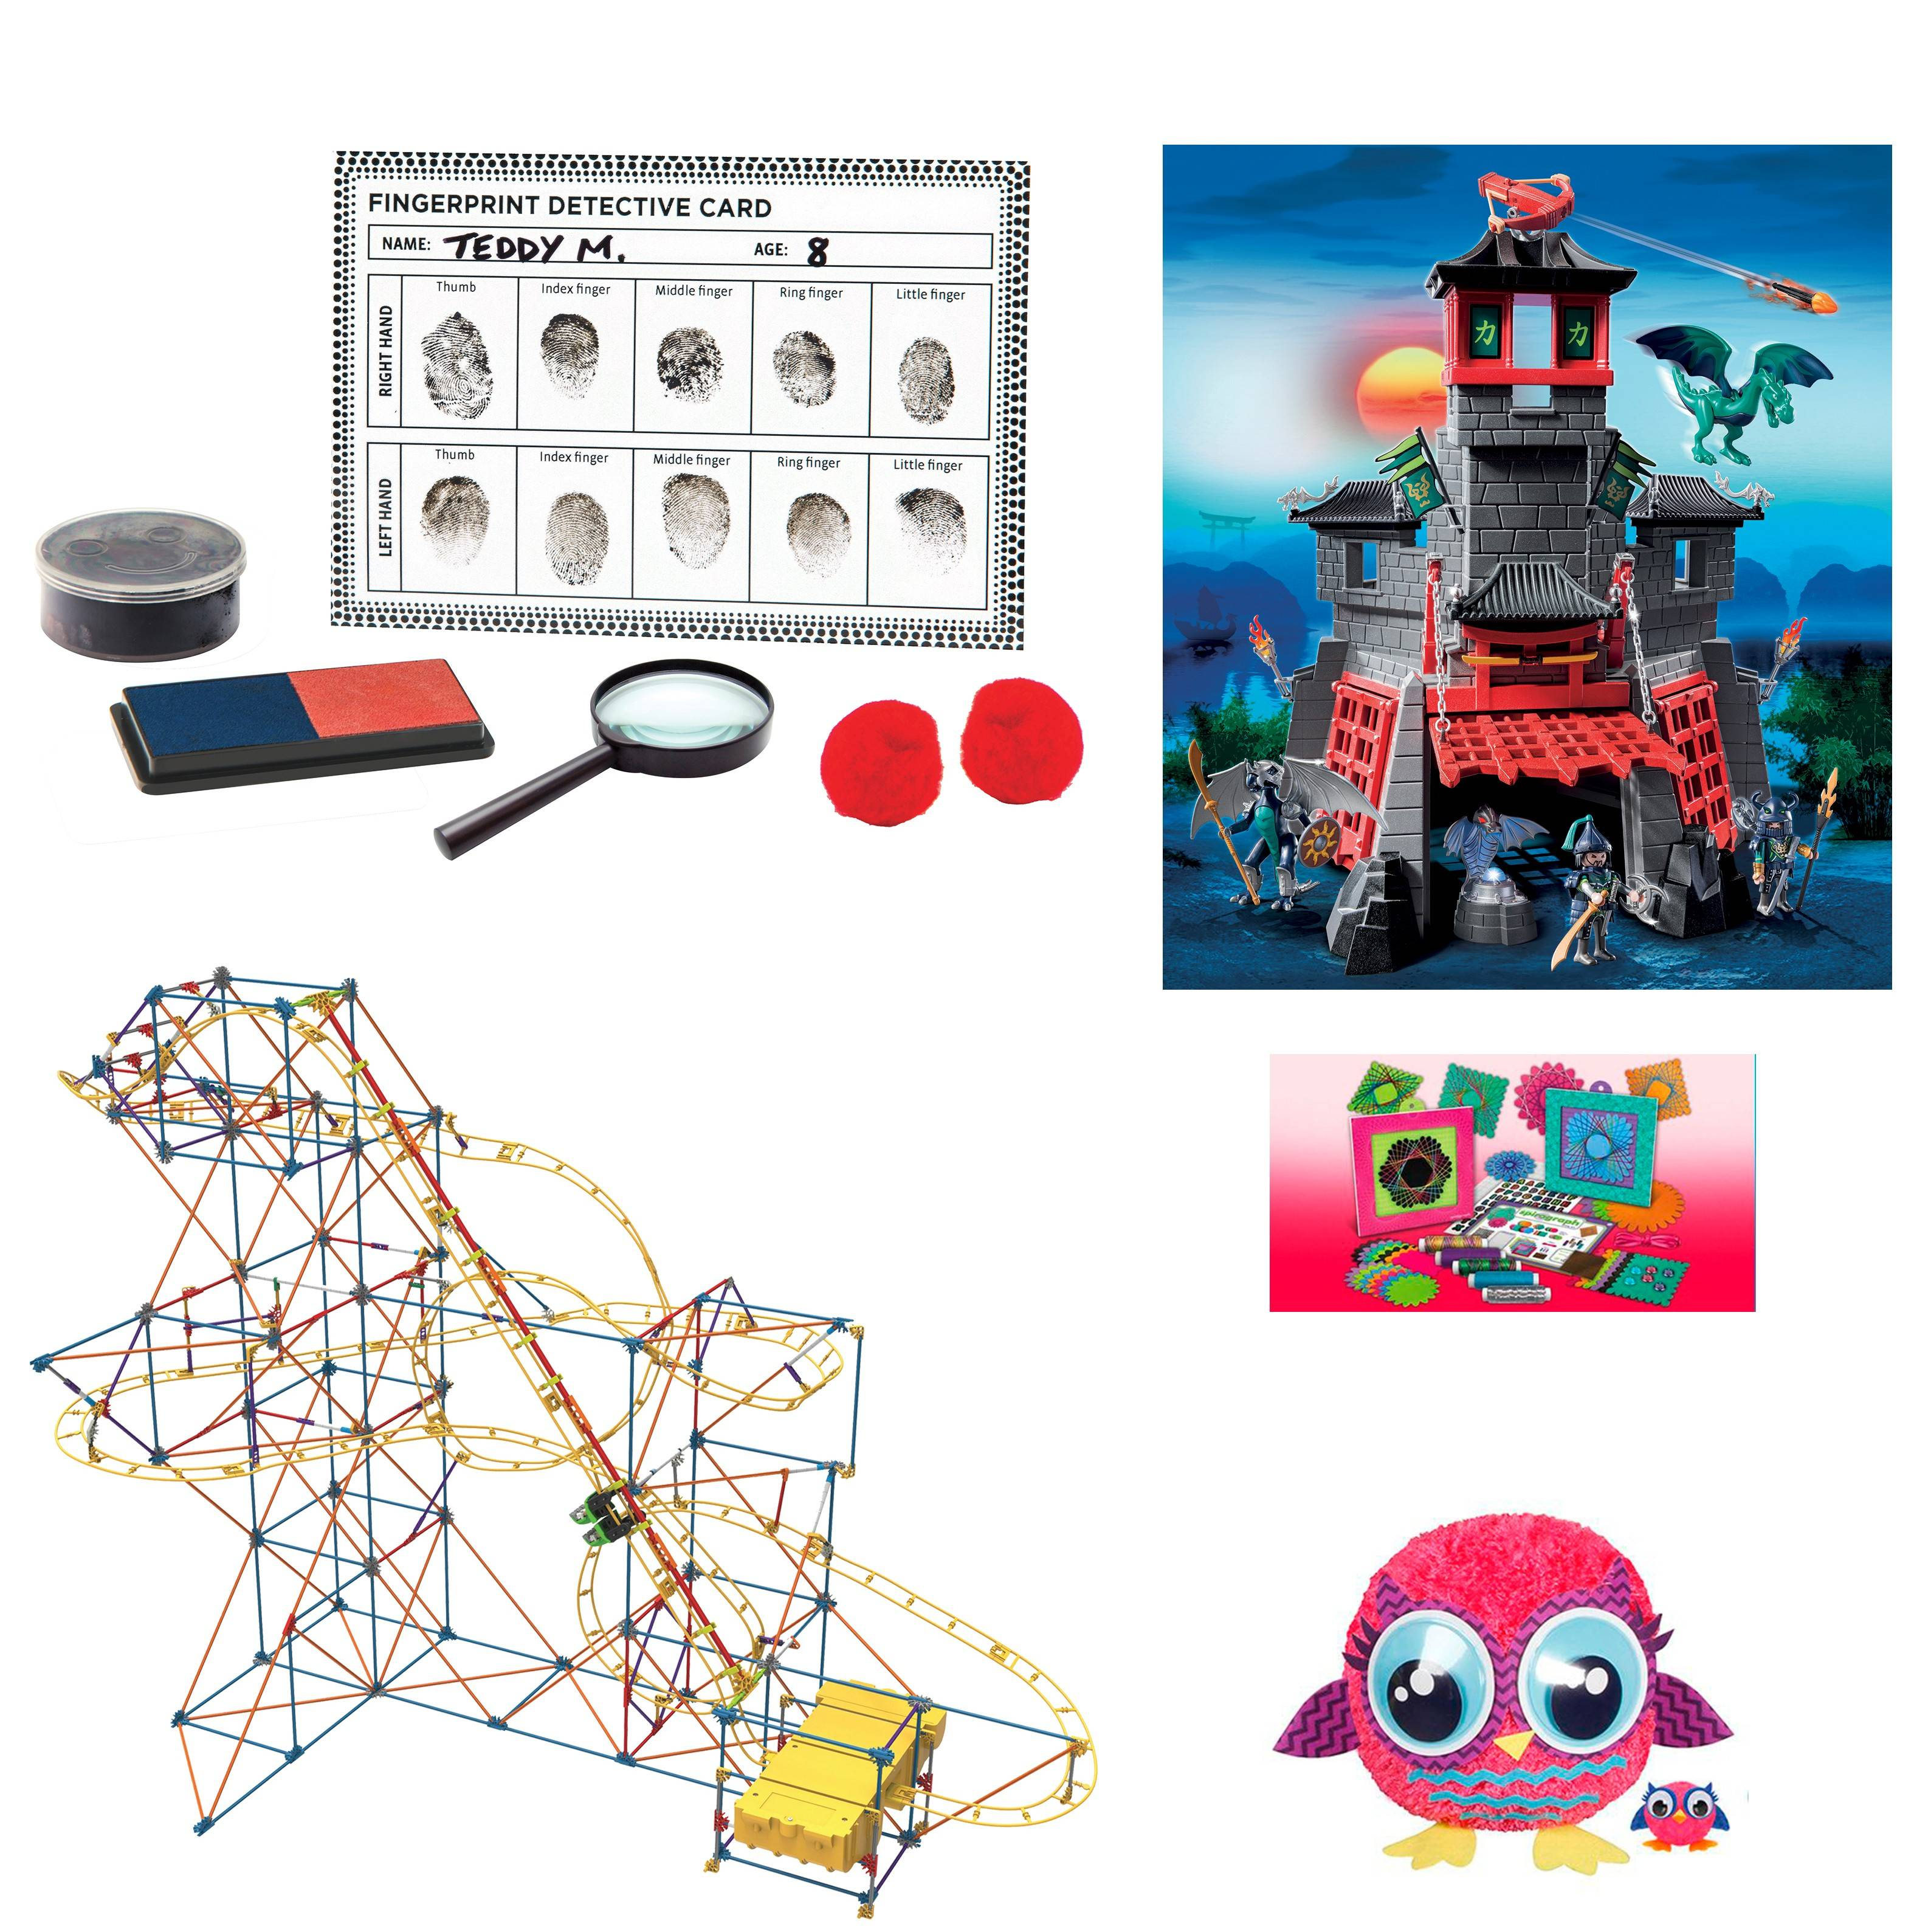 Here are some toys that were popular among young testers for The Washington Post. Clockwise from top left: Fingerprint Detective, Playmobil Secret Dragon Fort, Spirograph String Art, Pom Pals Owl Kit, K'Nex Hyperspeed Hangtime Roller Coaster Building Set.